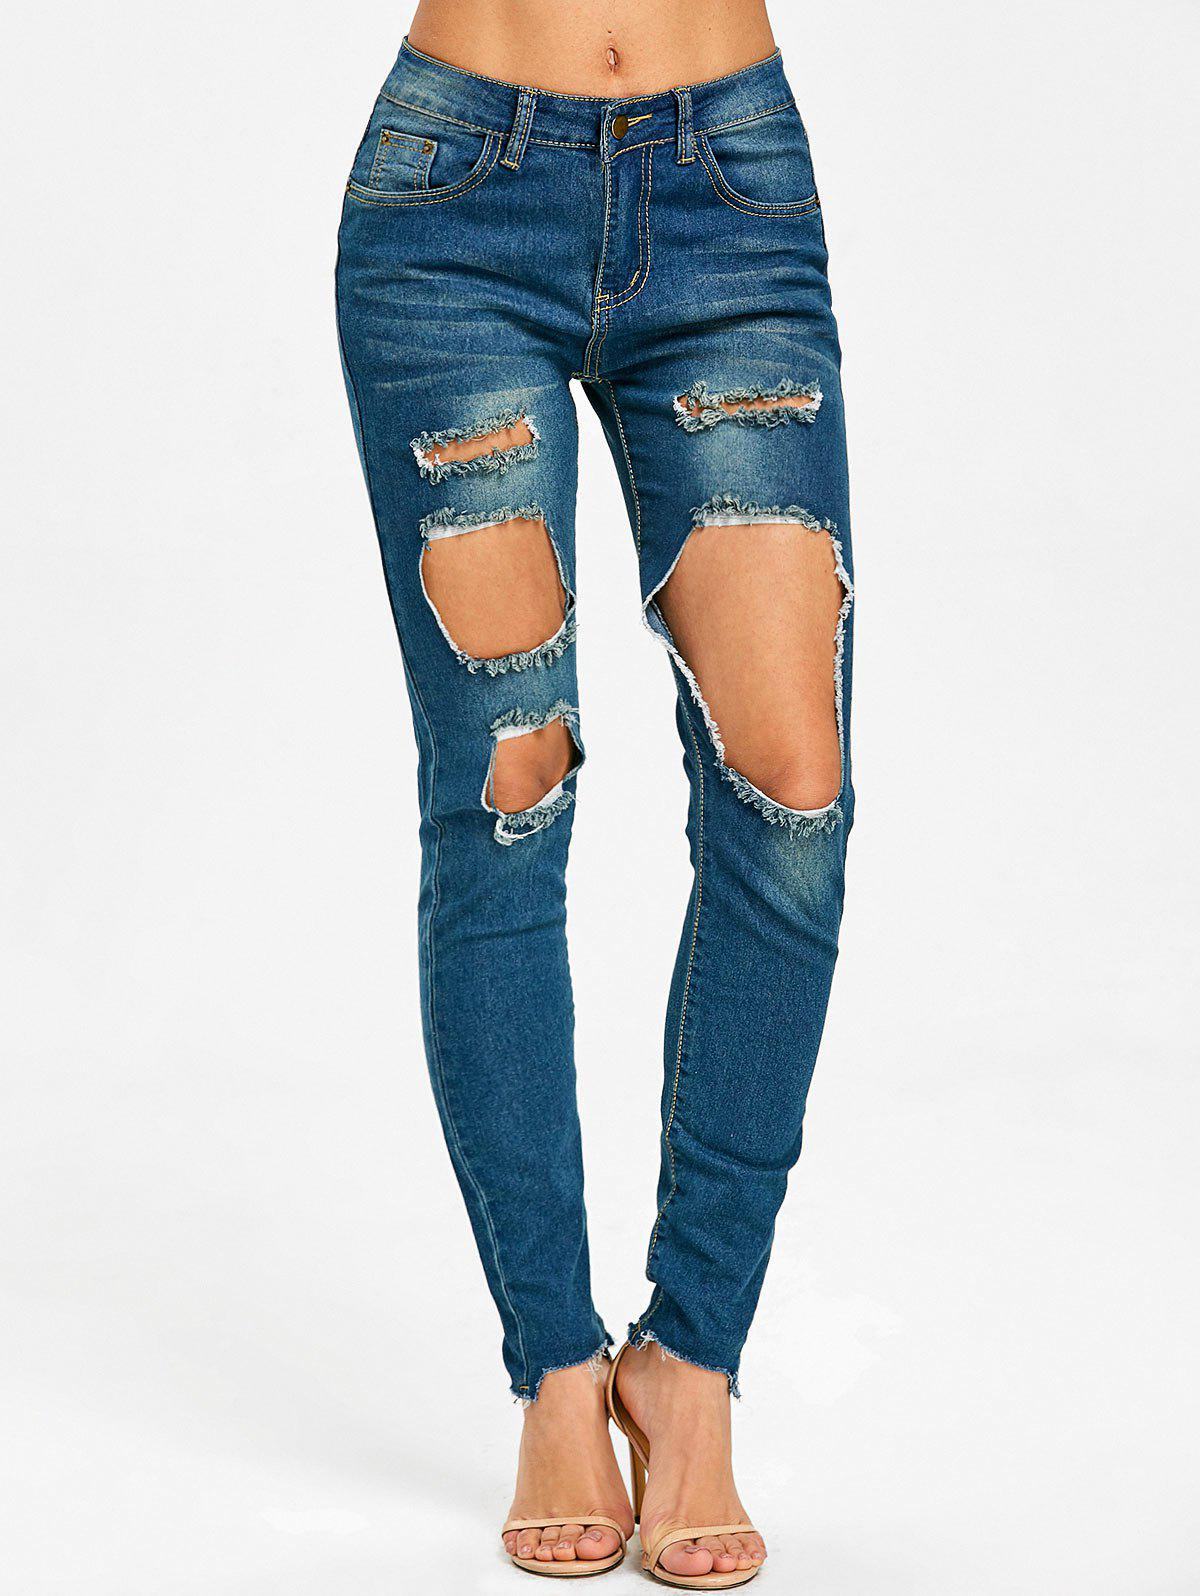 Skinny Frayed Destroyed Jeans - BLUE 2XL